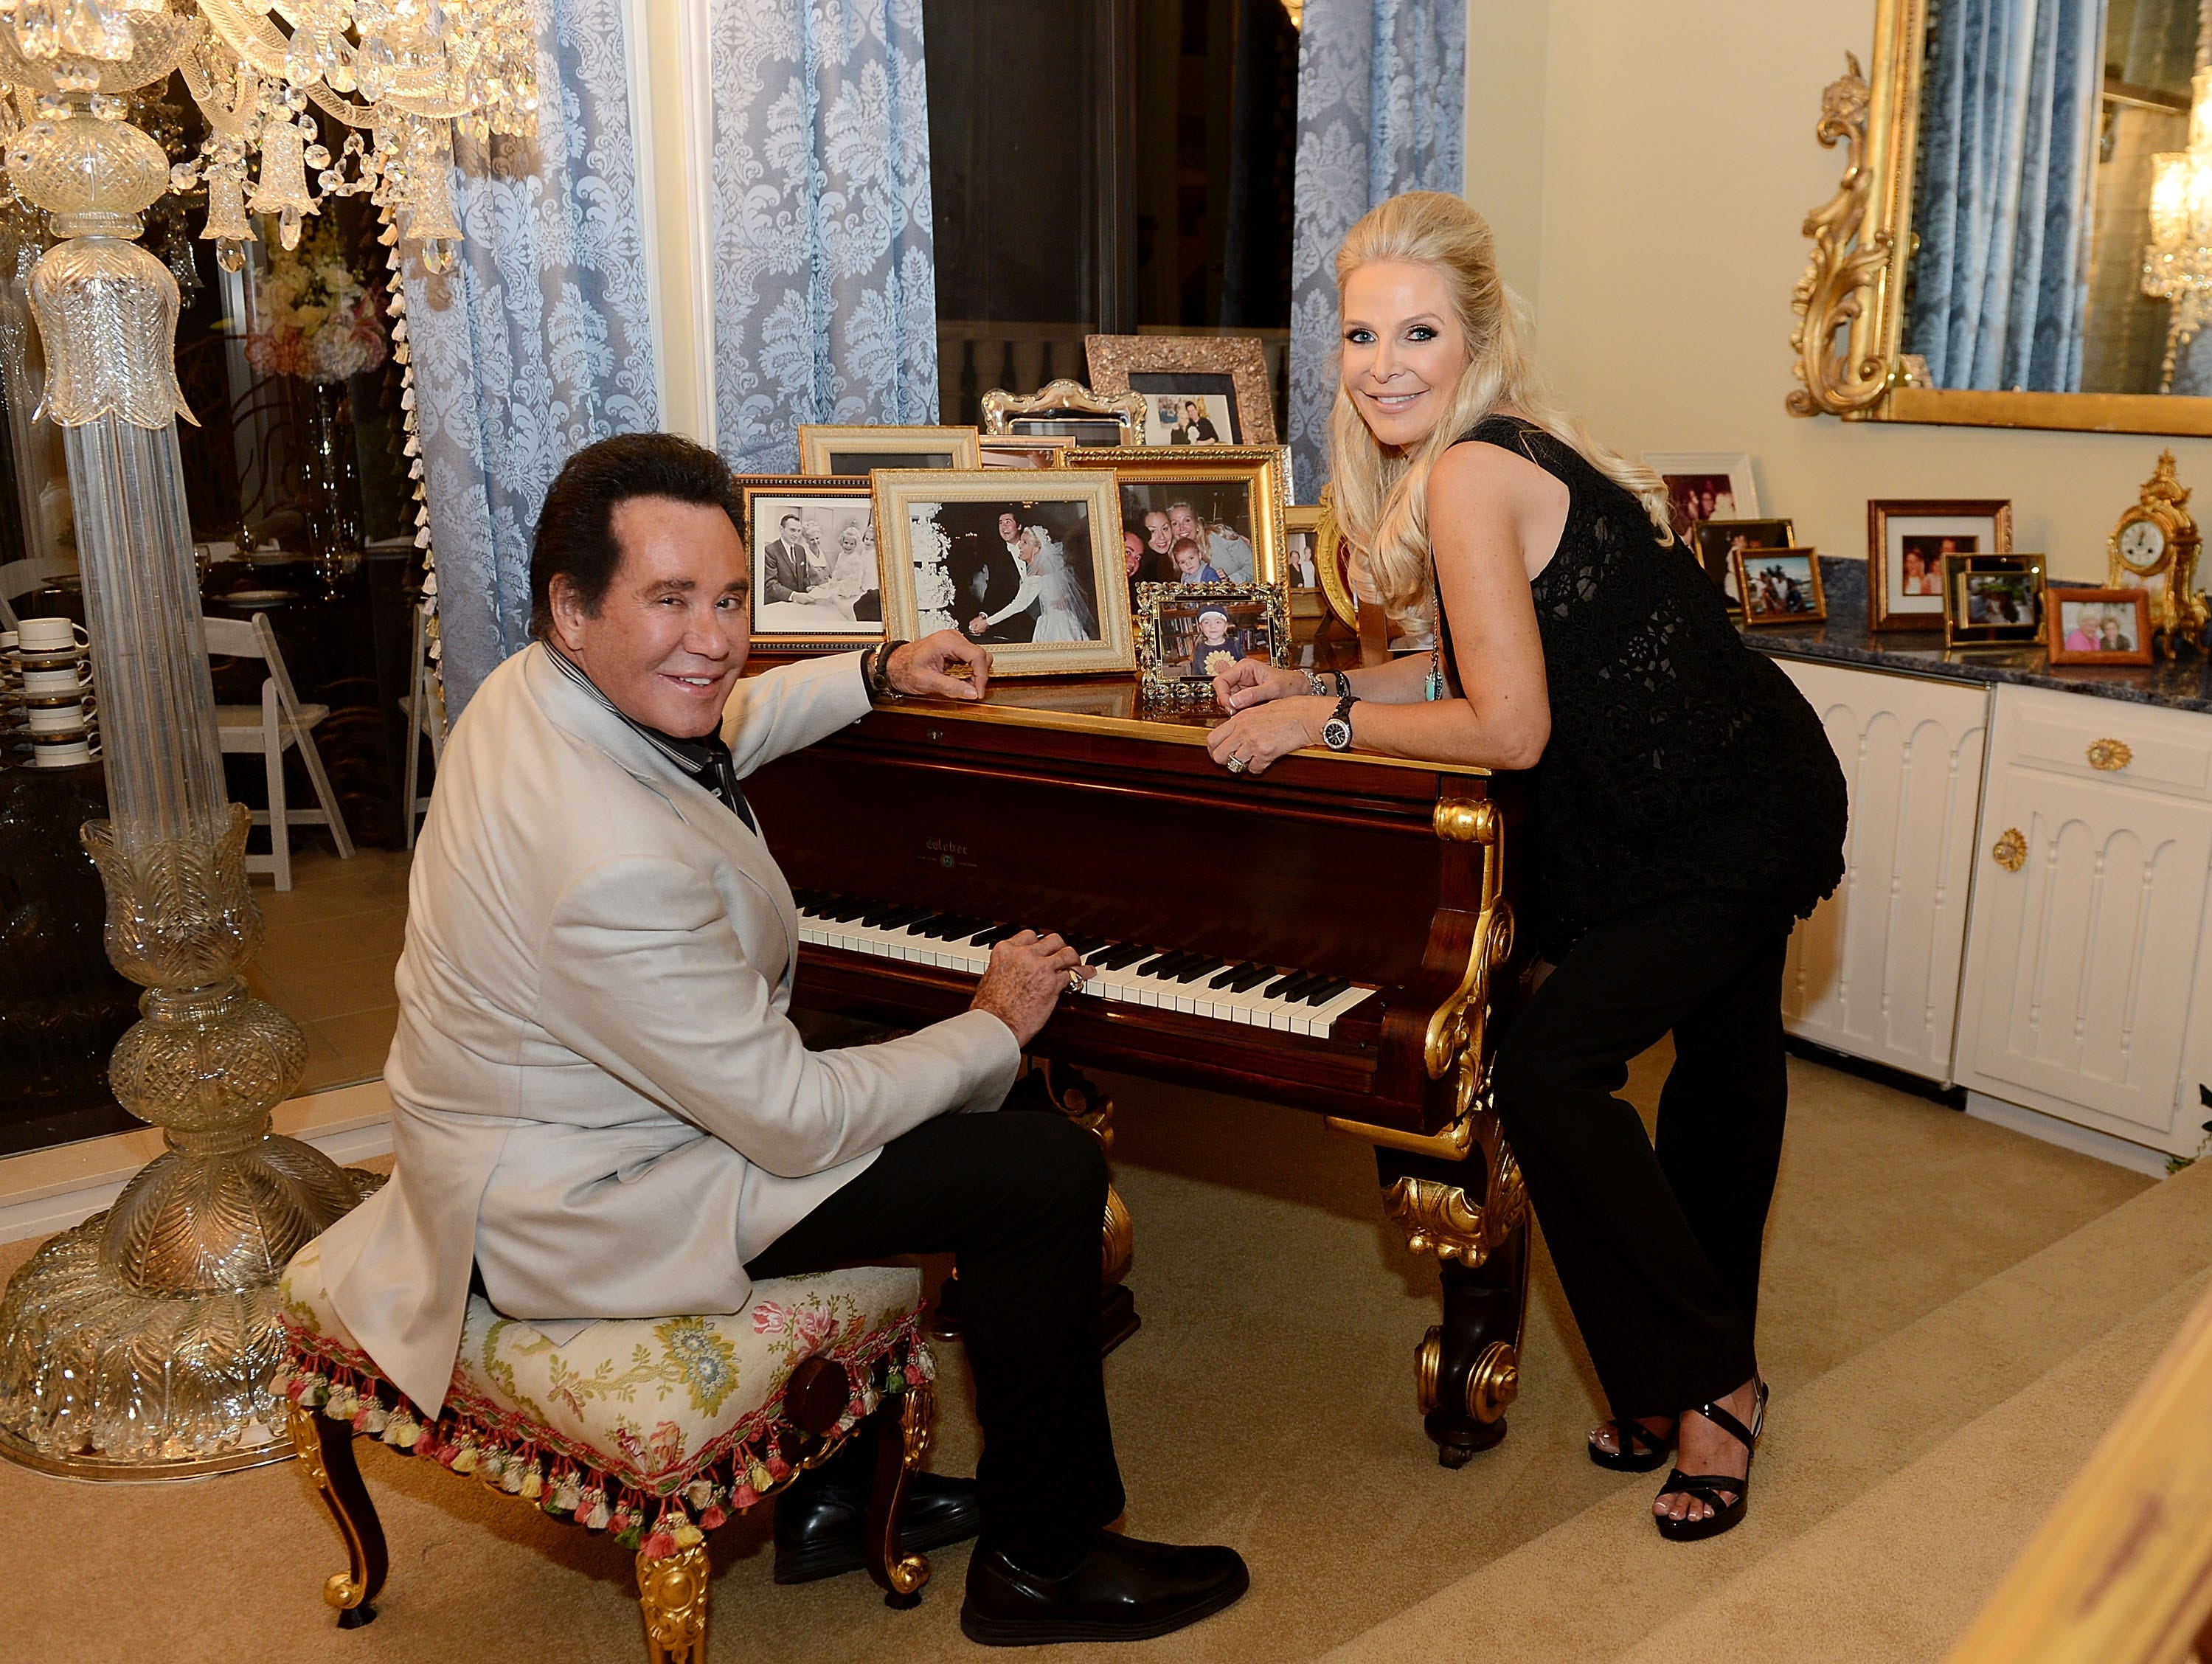 Wayne Newton and his wife Kathleen McCrone Newton attend the VIP opening of Casa De Shenandoah on Sept. 17, 2015 in Las Vegas